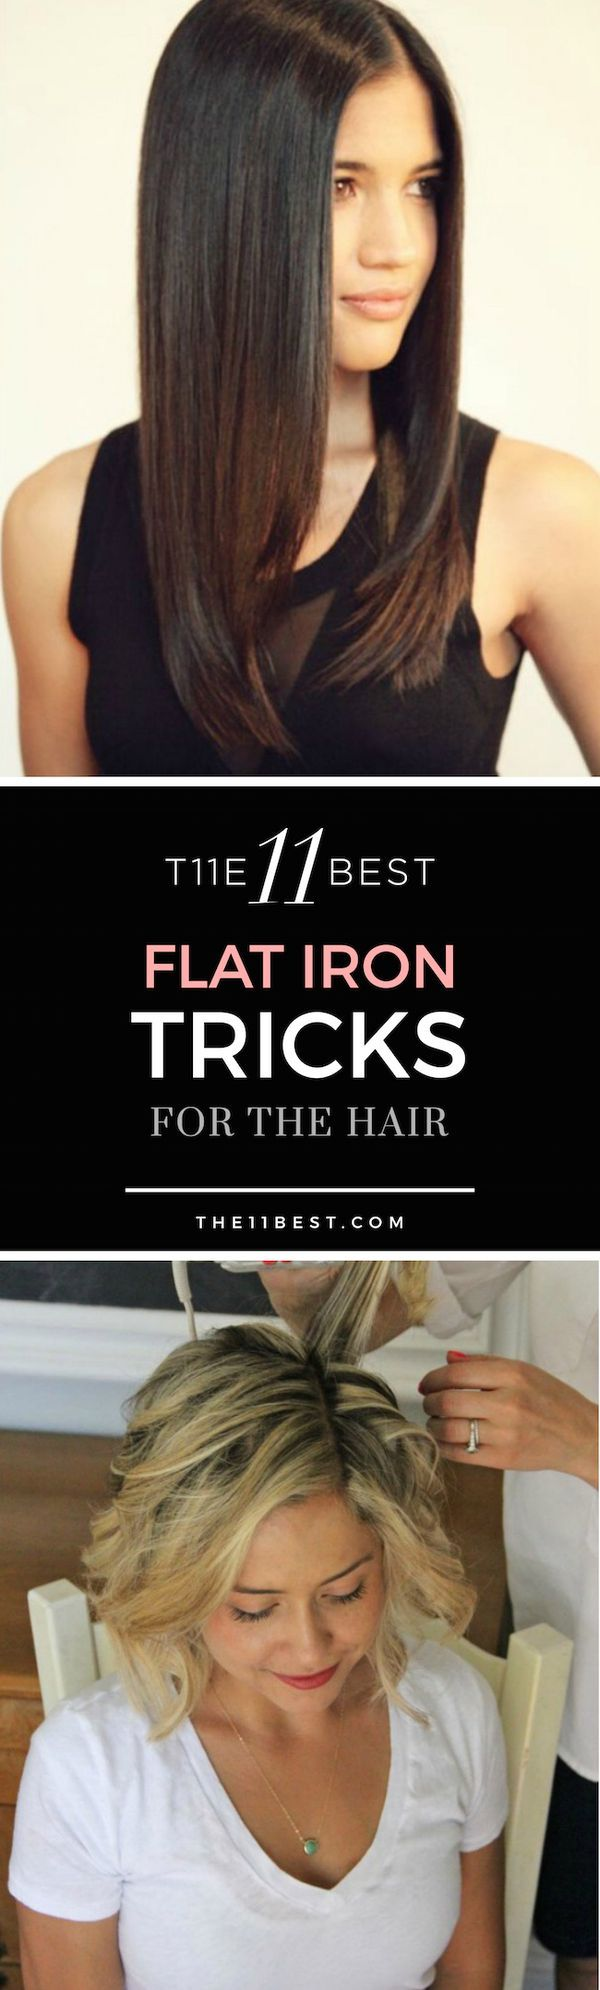 Want to add some extra fun to your hair? Try some of these flat iron tricks!